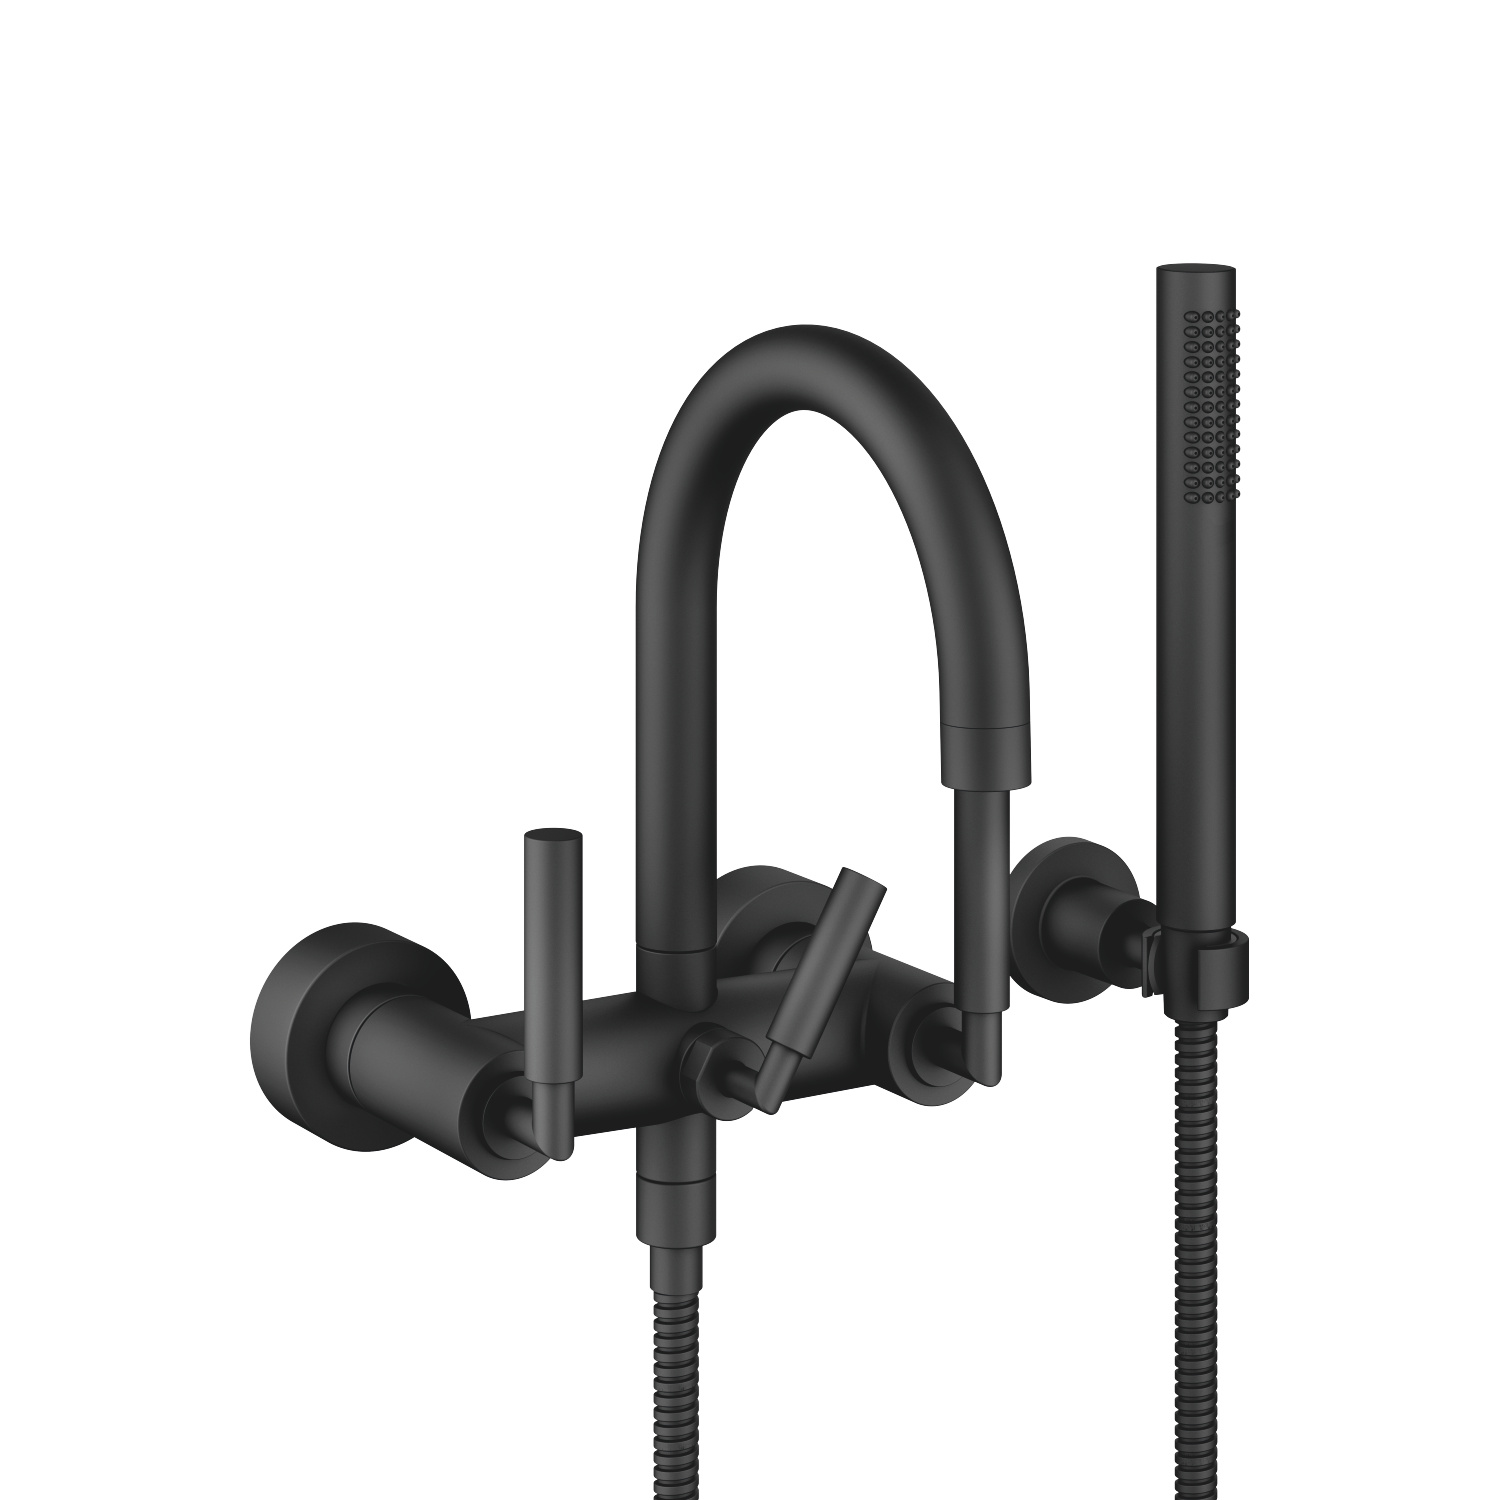 Tub mixer for wall-mounted installation with hand shower set - black matte